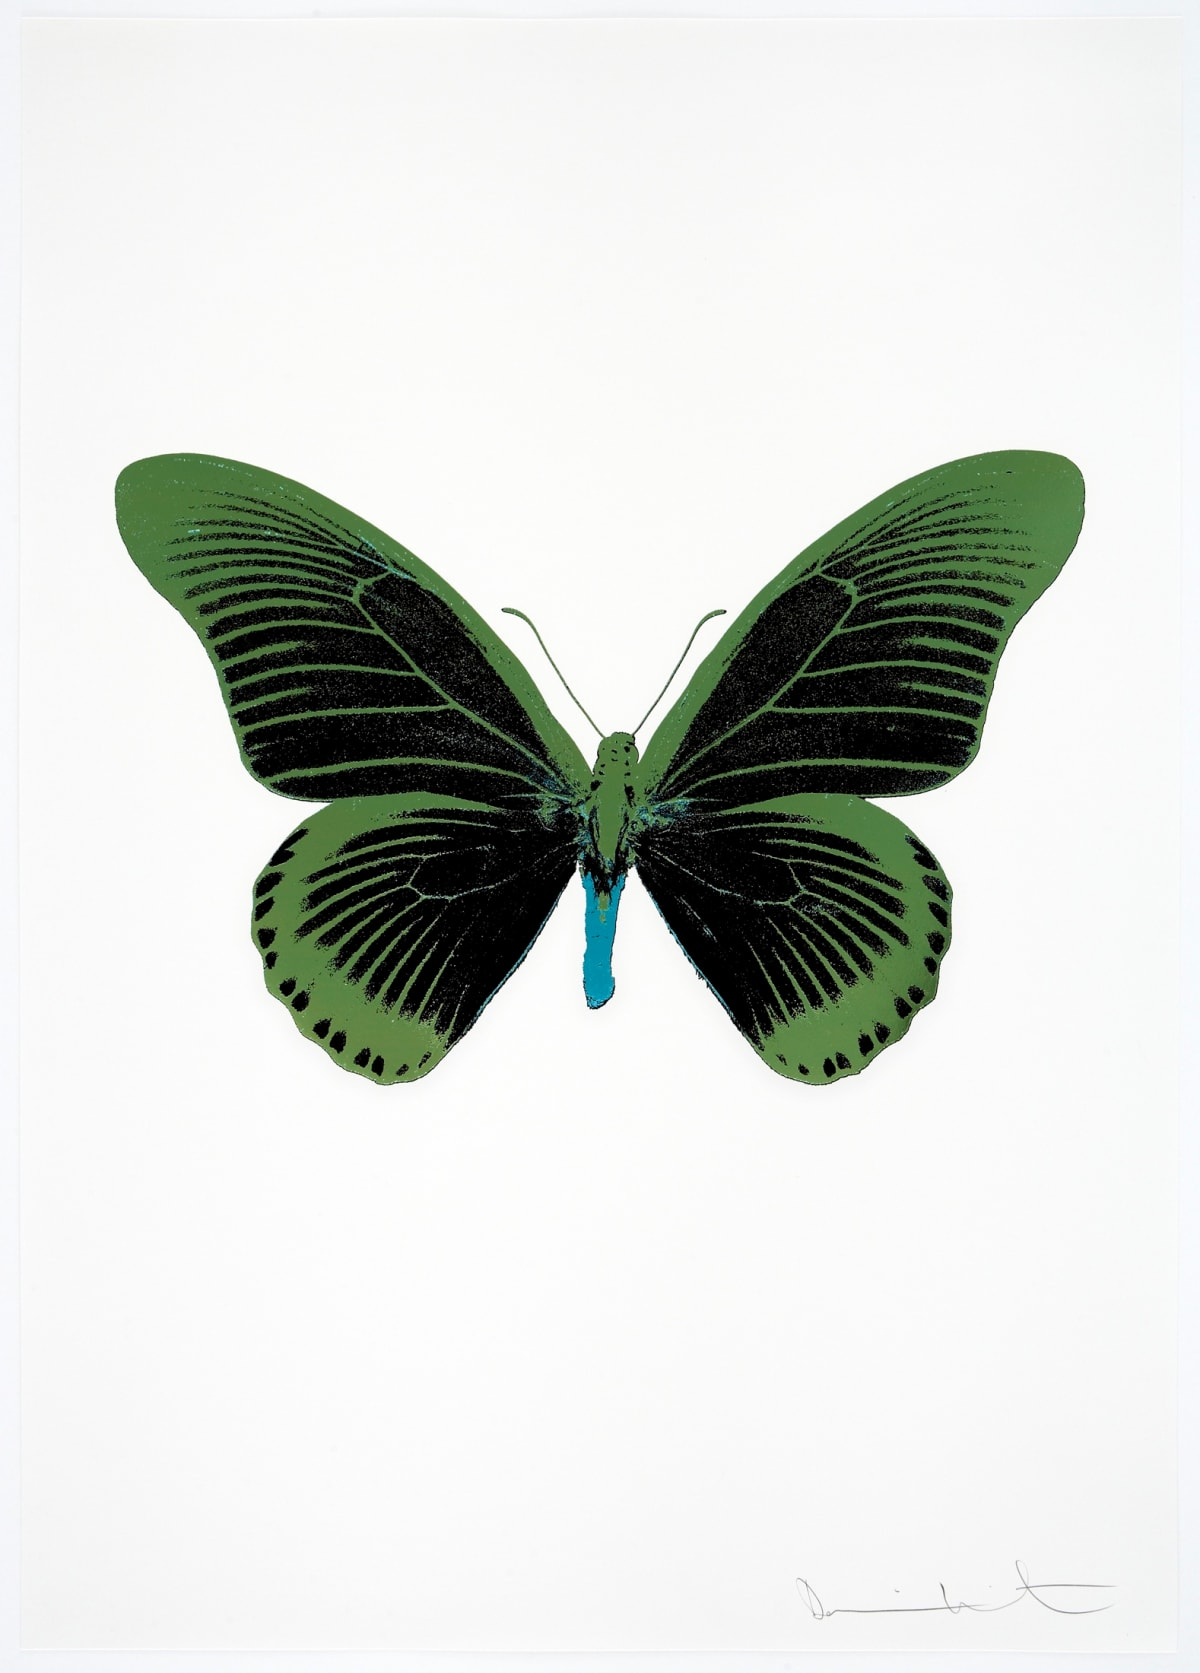 Damien Hirst The Souls IV - Raven Black/Leaf Green/Topaz Damien Hirst butterfly foil print for sale Damien Hirst print for sale , 2010 3 colour foil block on 300gsm Arches 88 archival paper. Signed and numbered. Published by Paul Stolper and Other Criteria 72 x 51cm OC8038 / 1418-61 Edition of 15